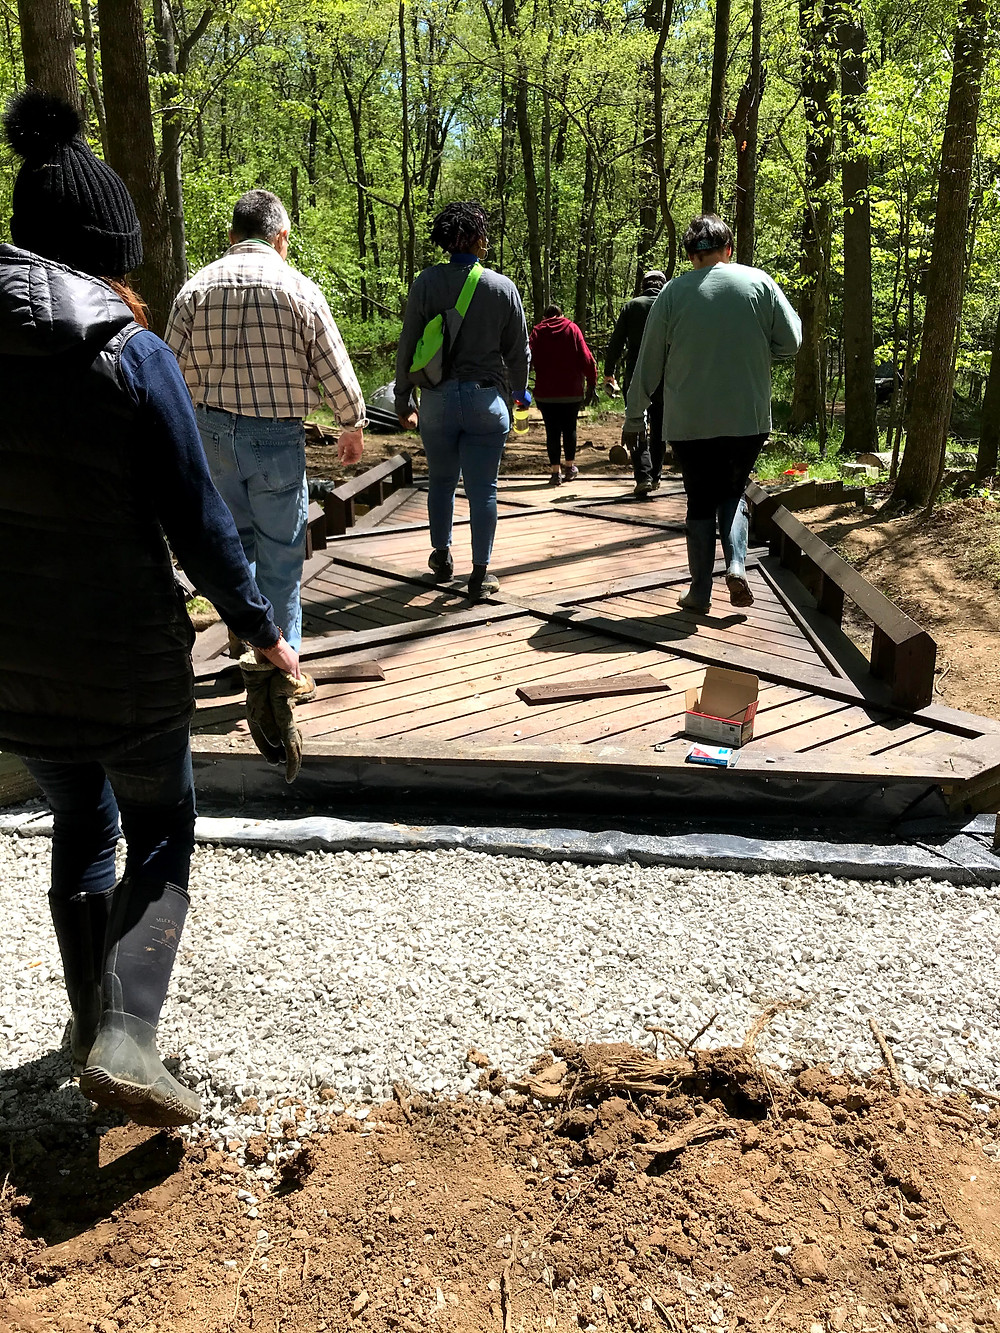 One of the bridges being constructed at Radnor Lake State Park.